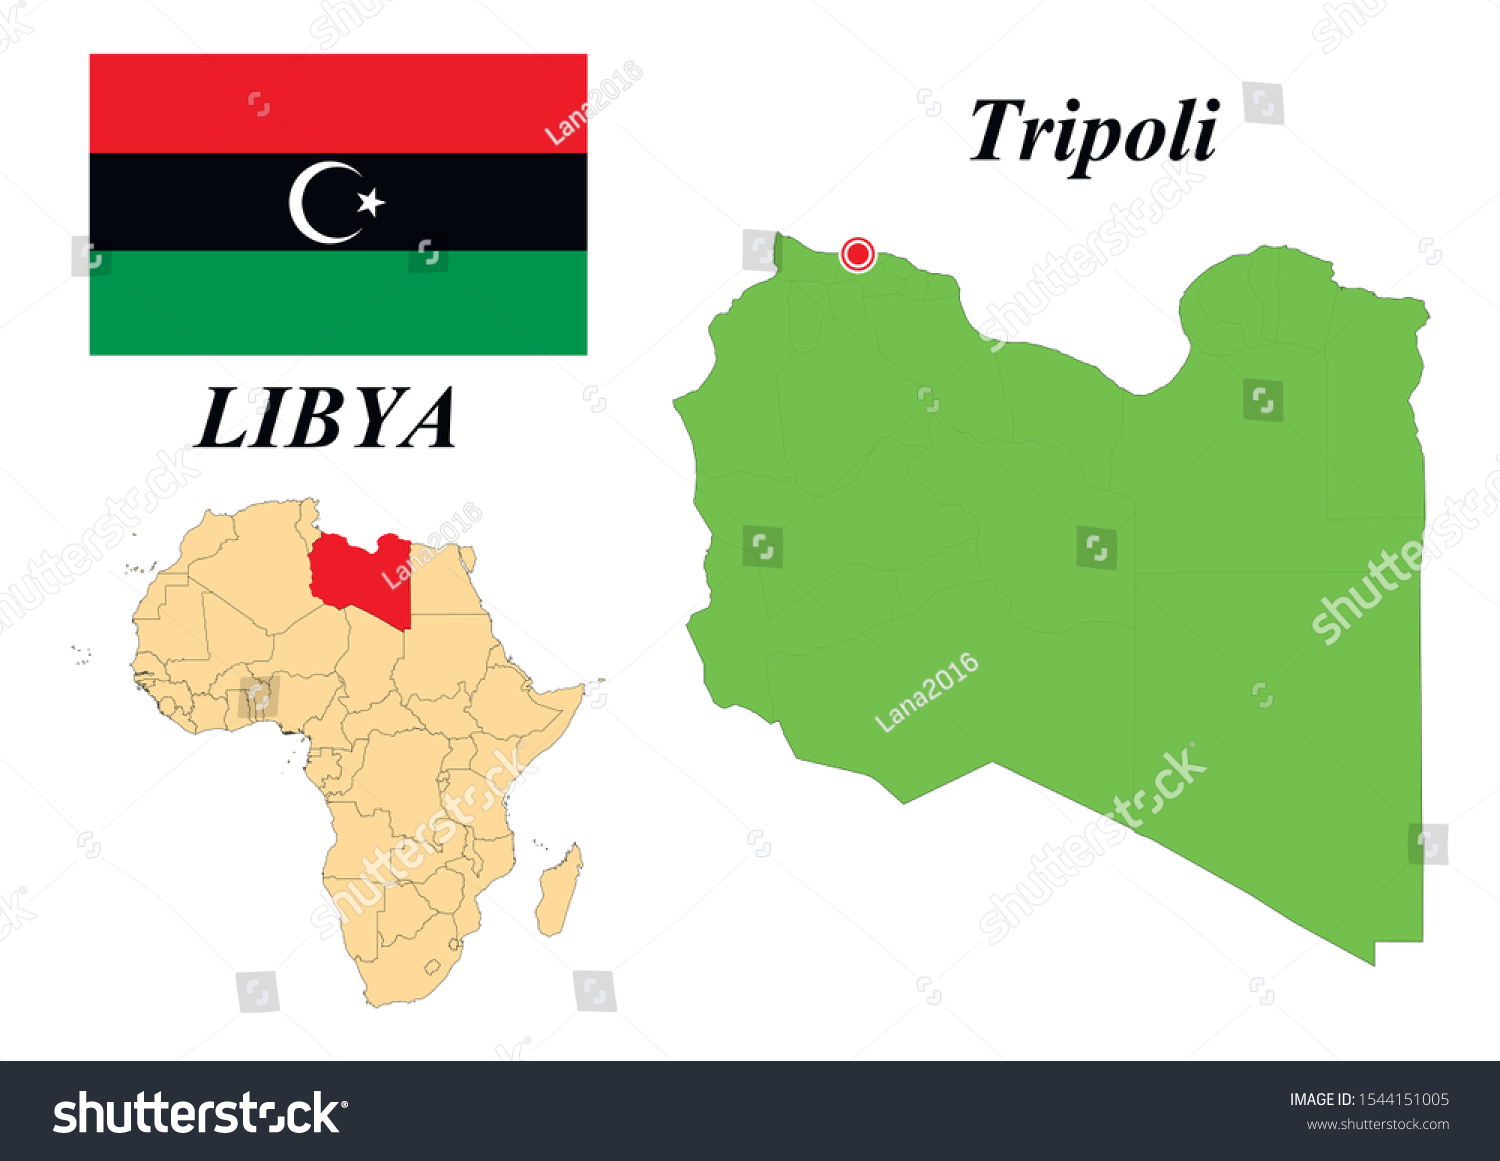 Picture of: State Libya Capital Tripoli Contour Map Stock Vector Royalty Free 1544151005